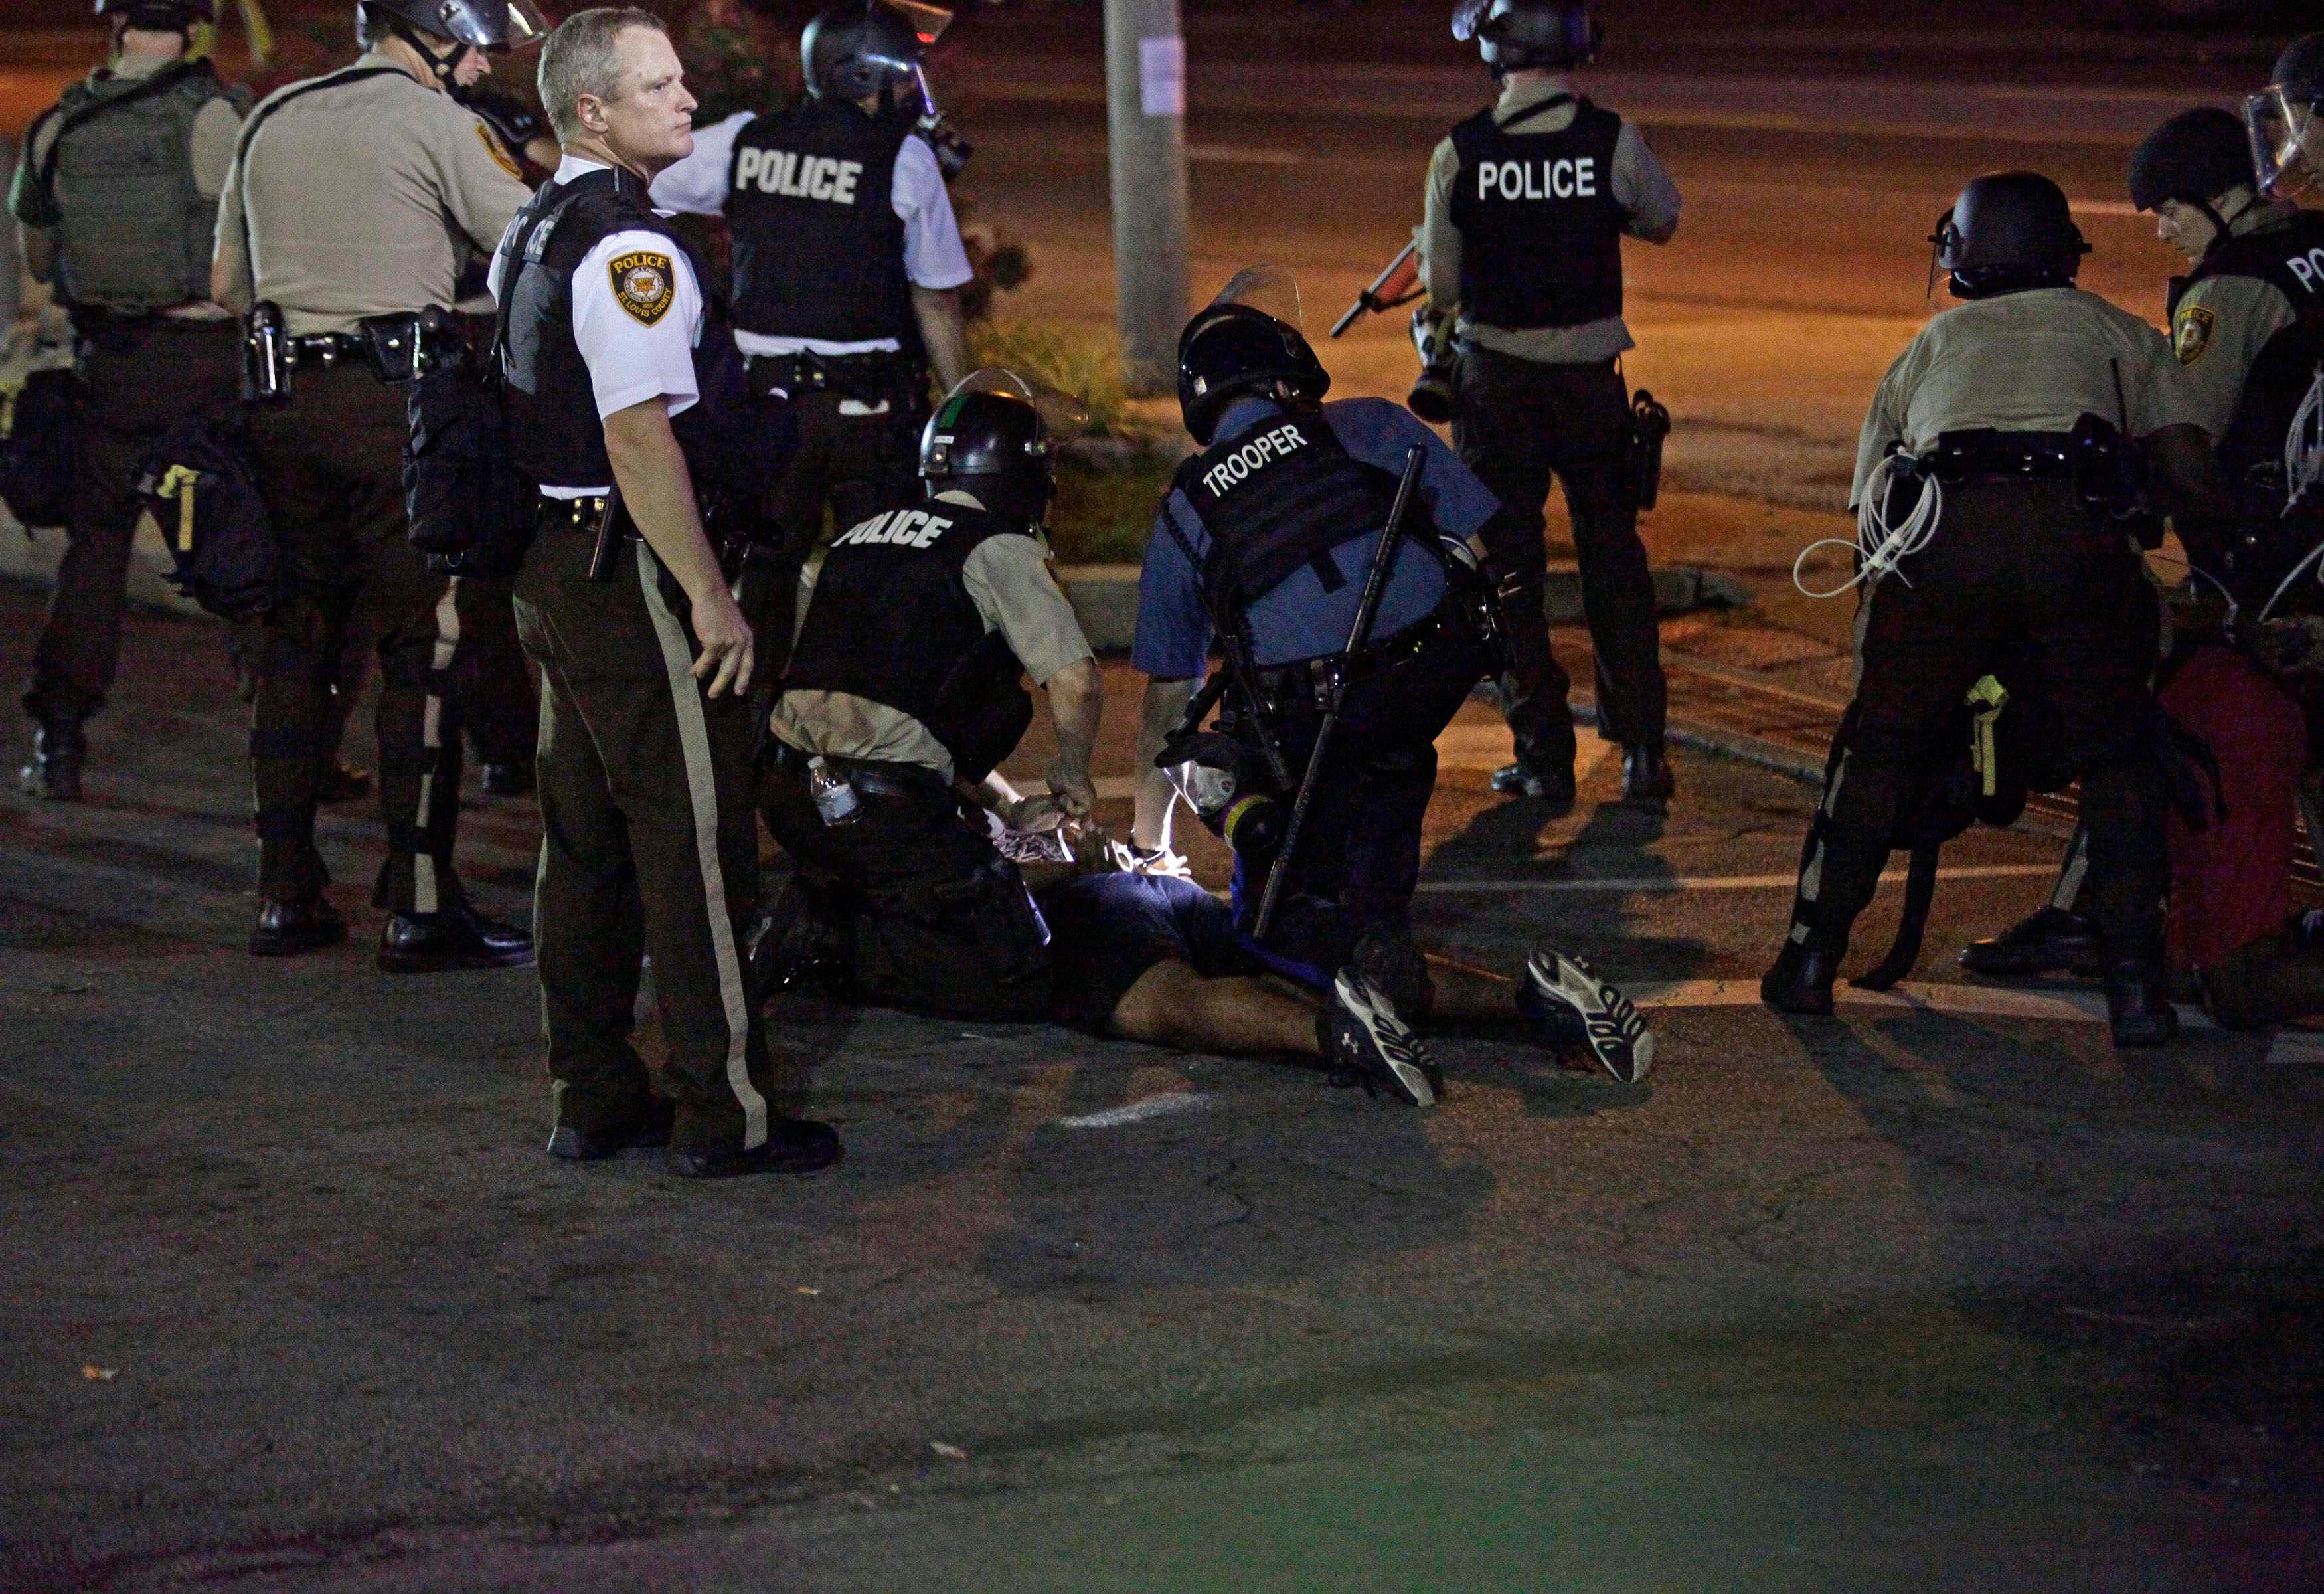 Police detain a demonstrator during a protest against the shooting death of Michael Brown in Ferguson Missouri August 18, 2014.Reuters